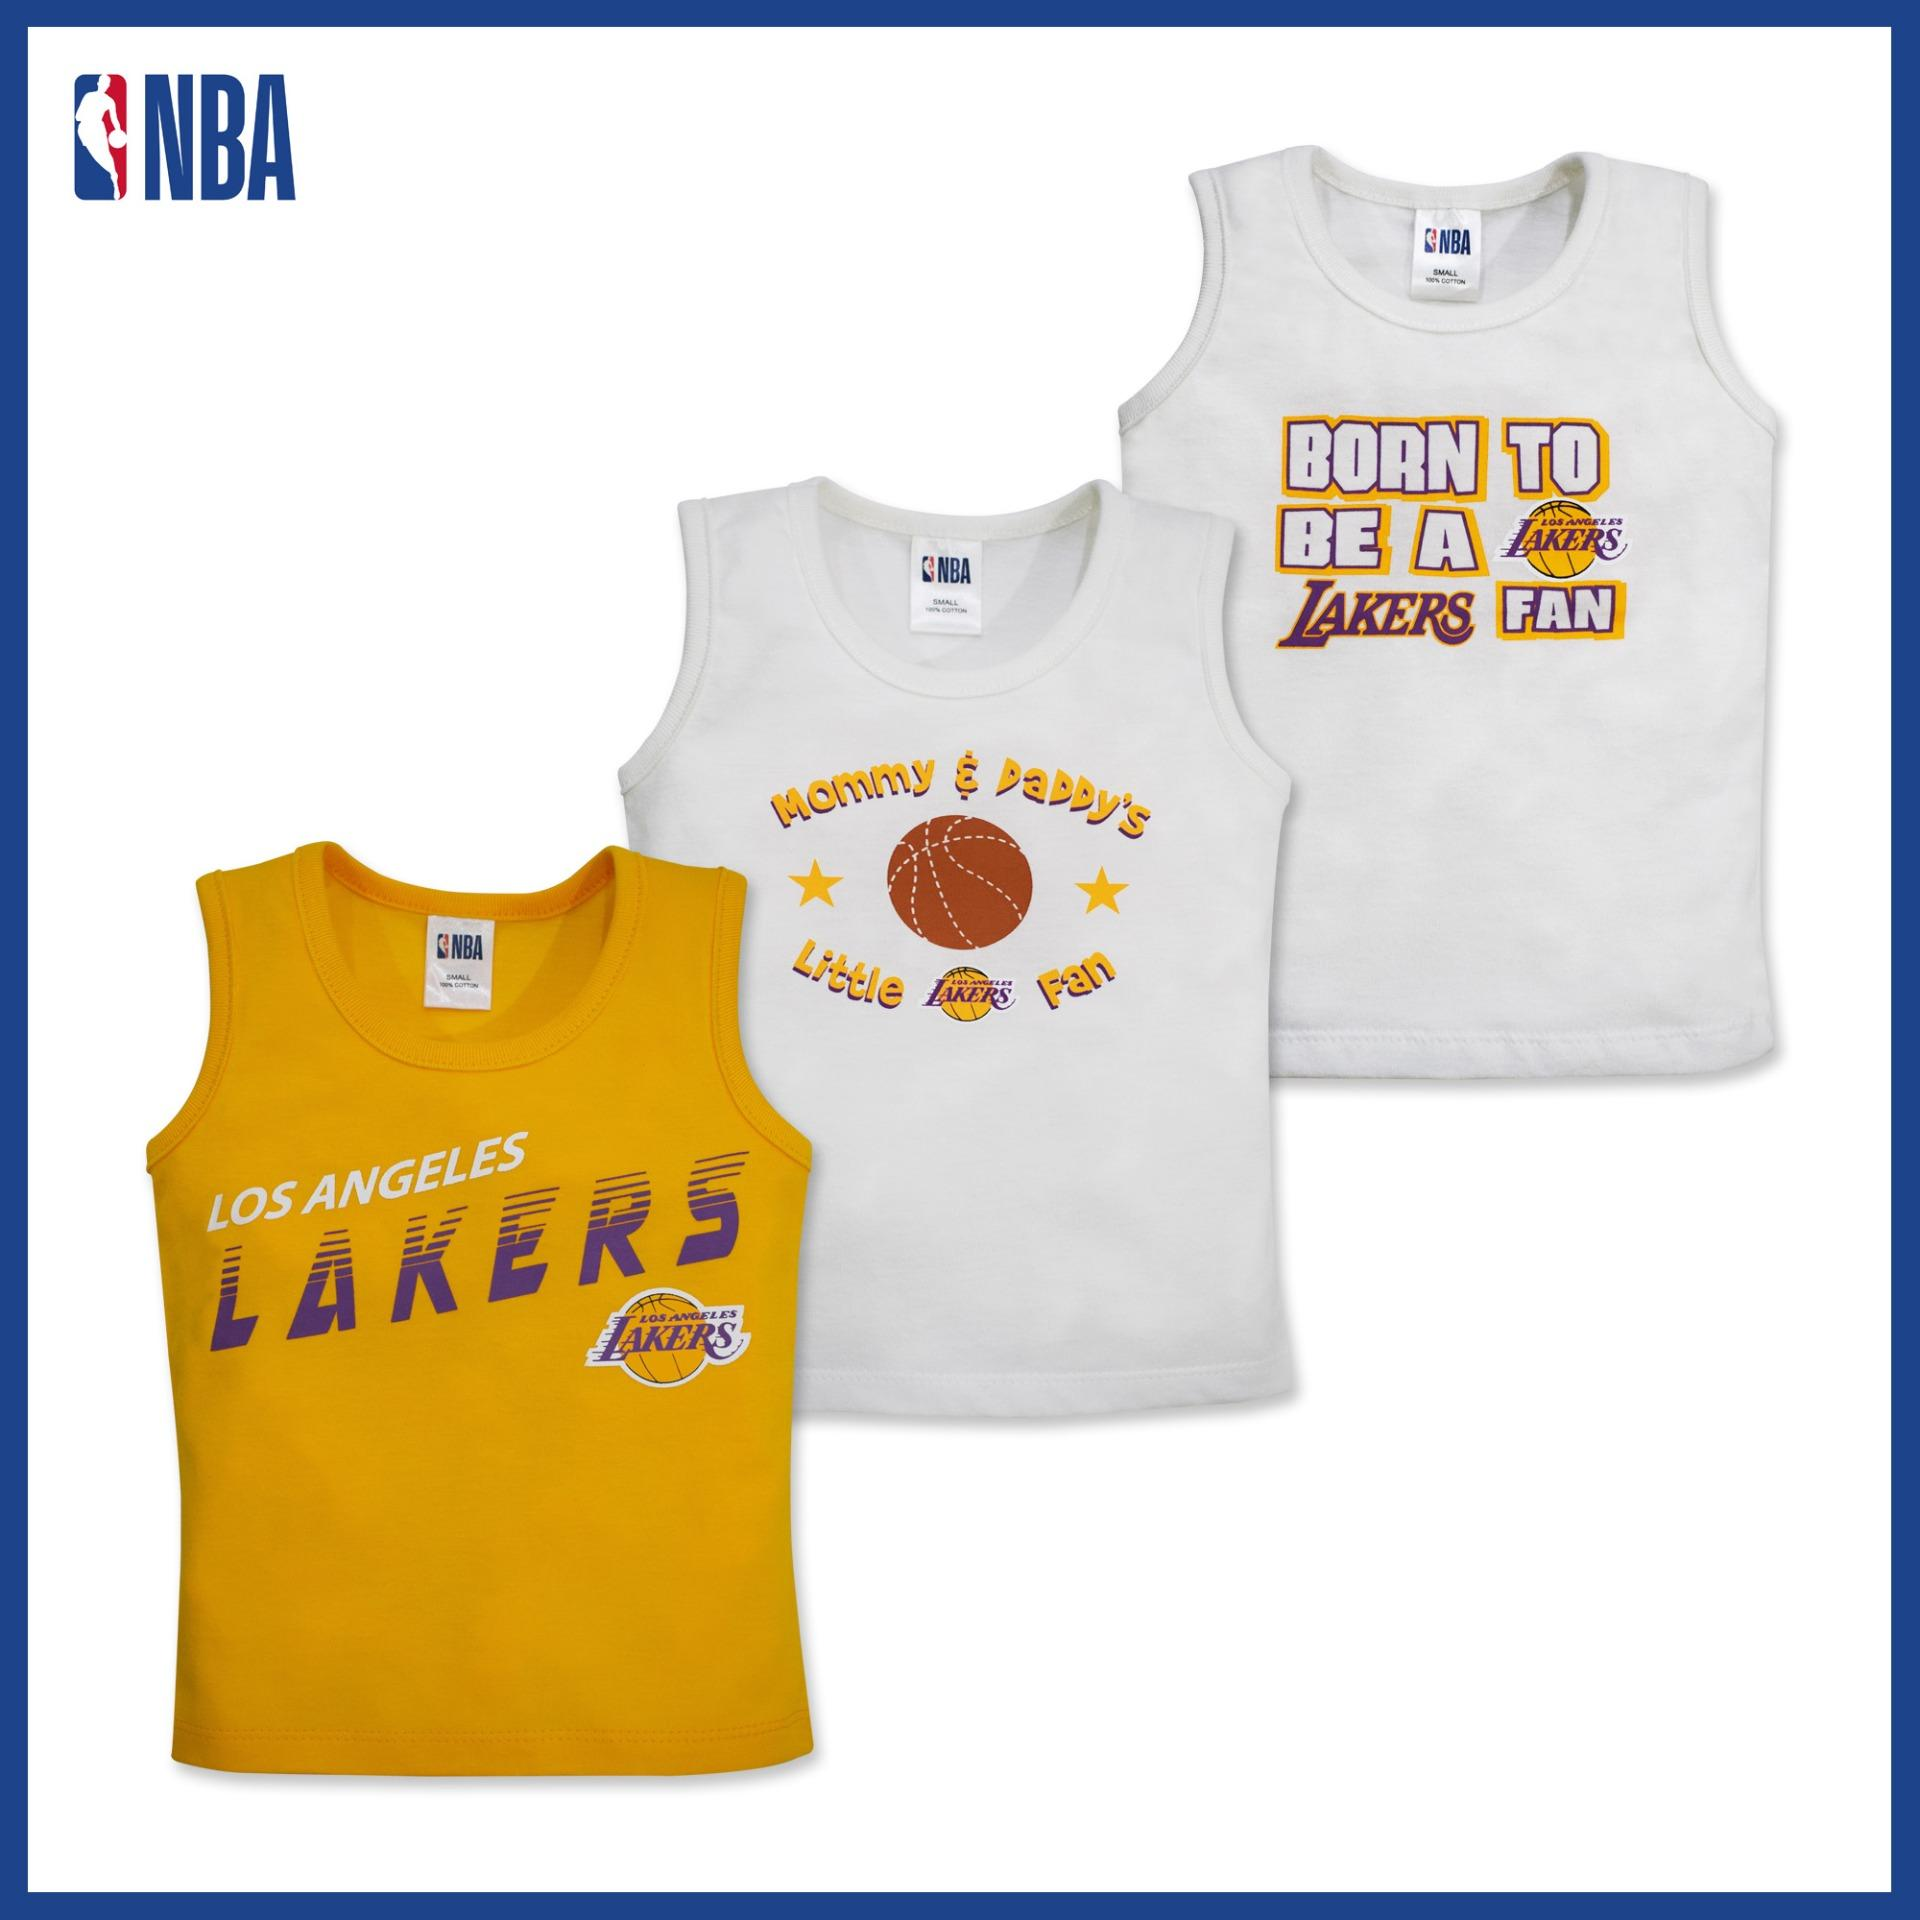 29ccaf65079 NBA Babies Philippines  NBA Babies price list - Muscle Shirts ...